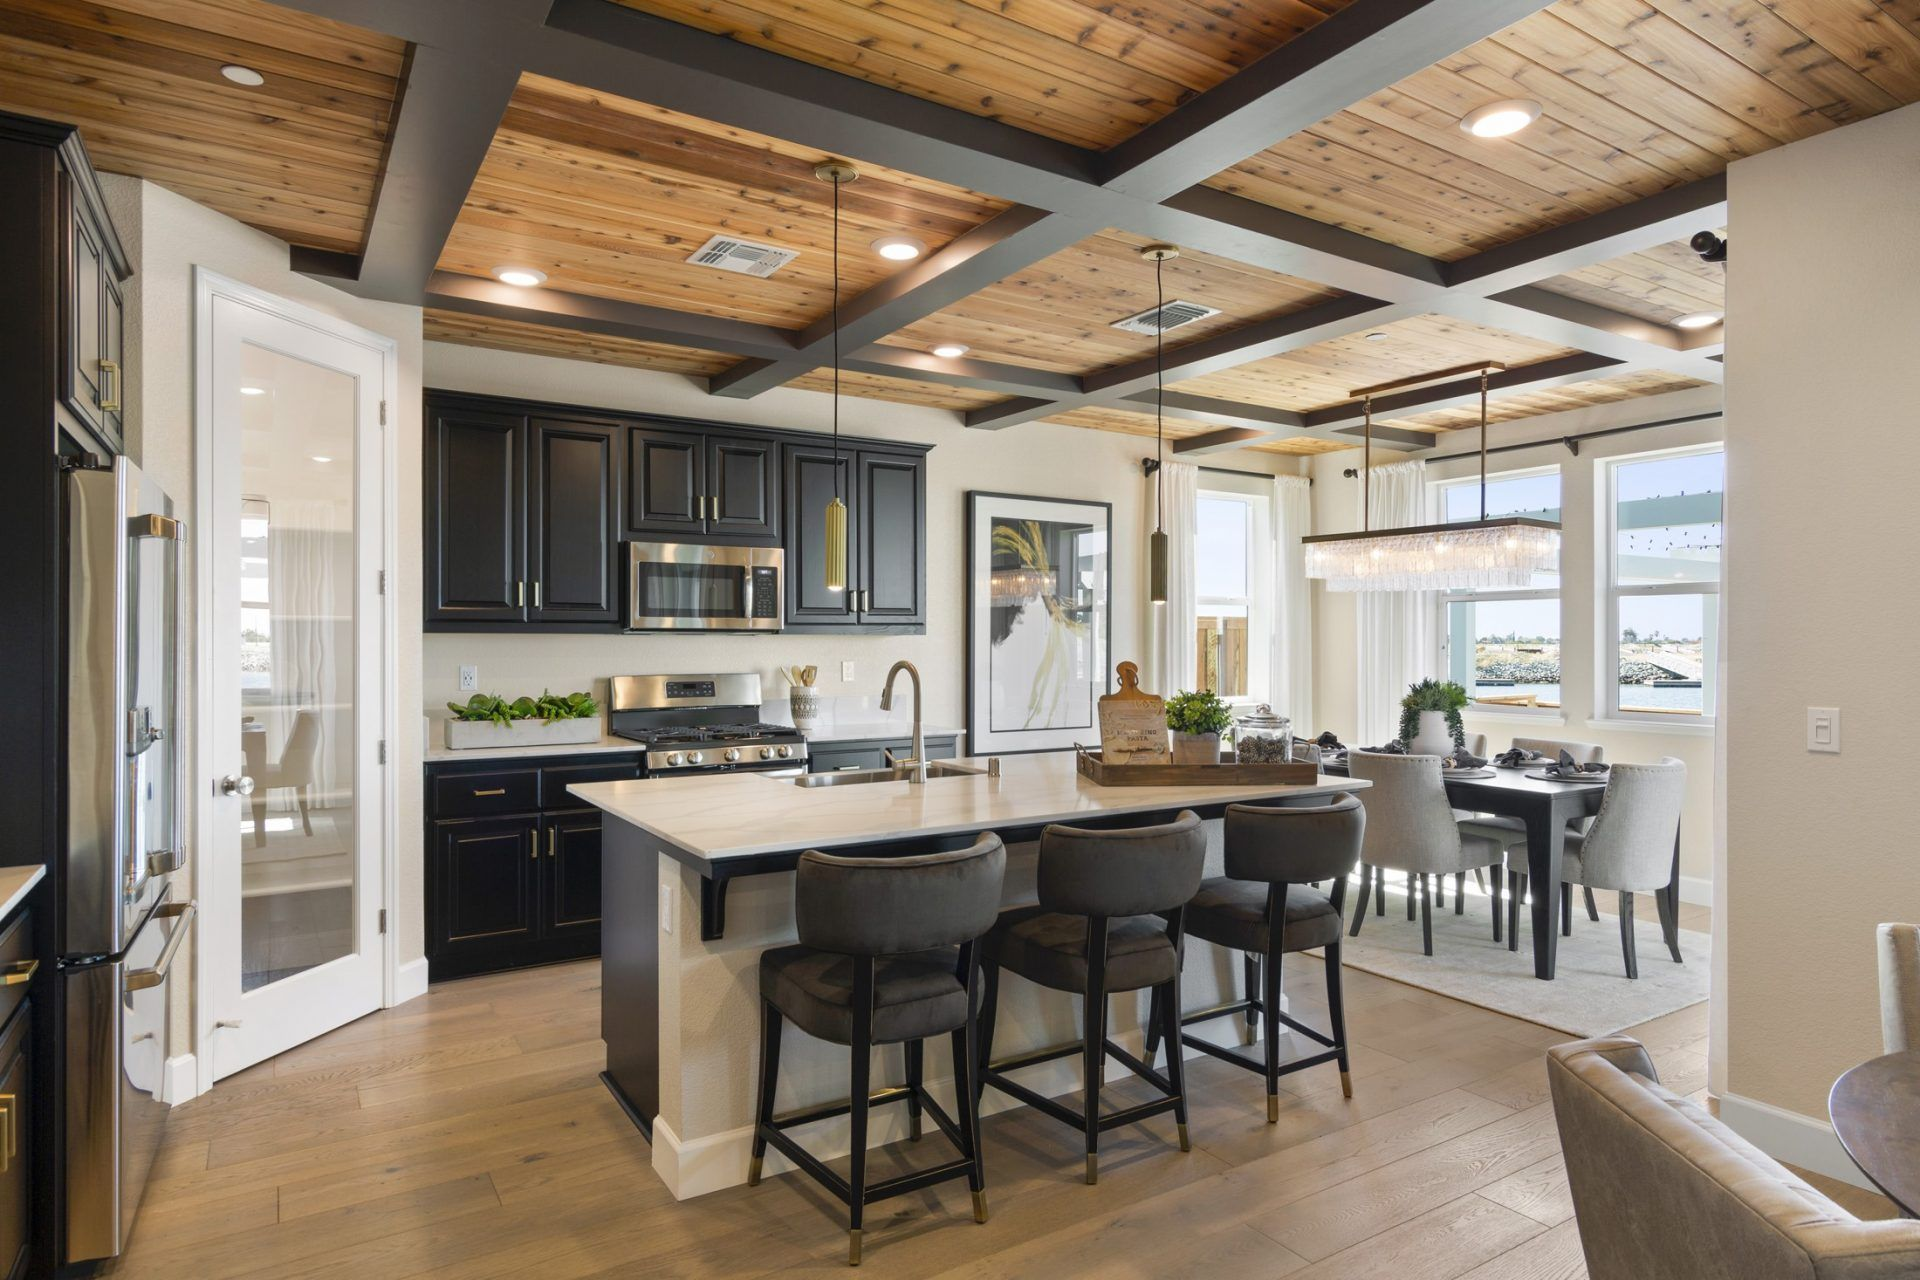 NEW HOMES FOR SALE IN THE BAY AREA